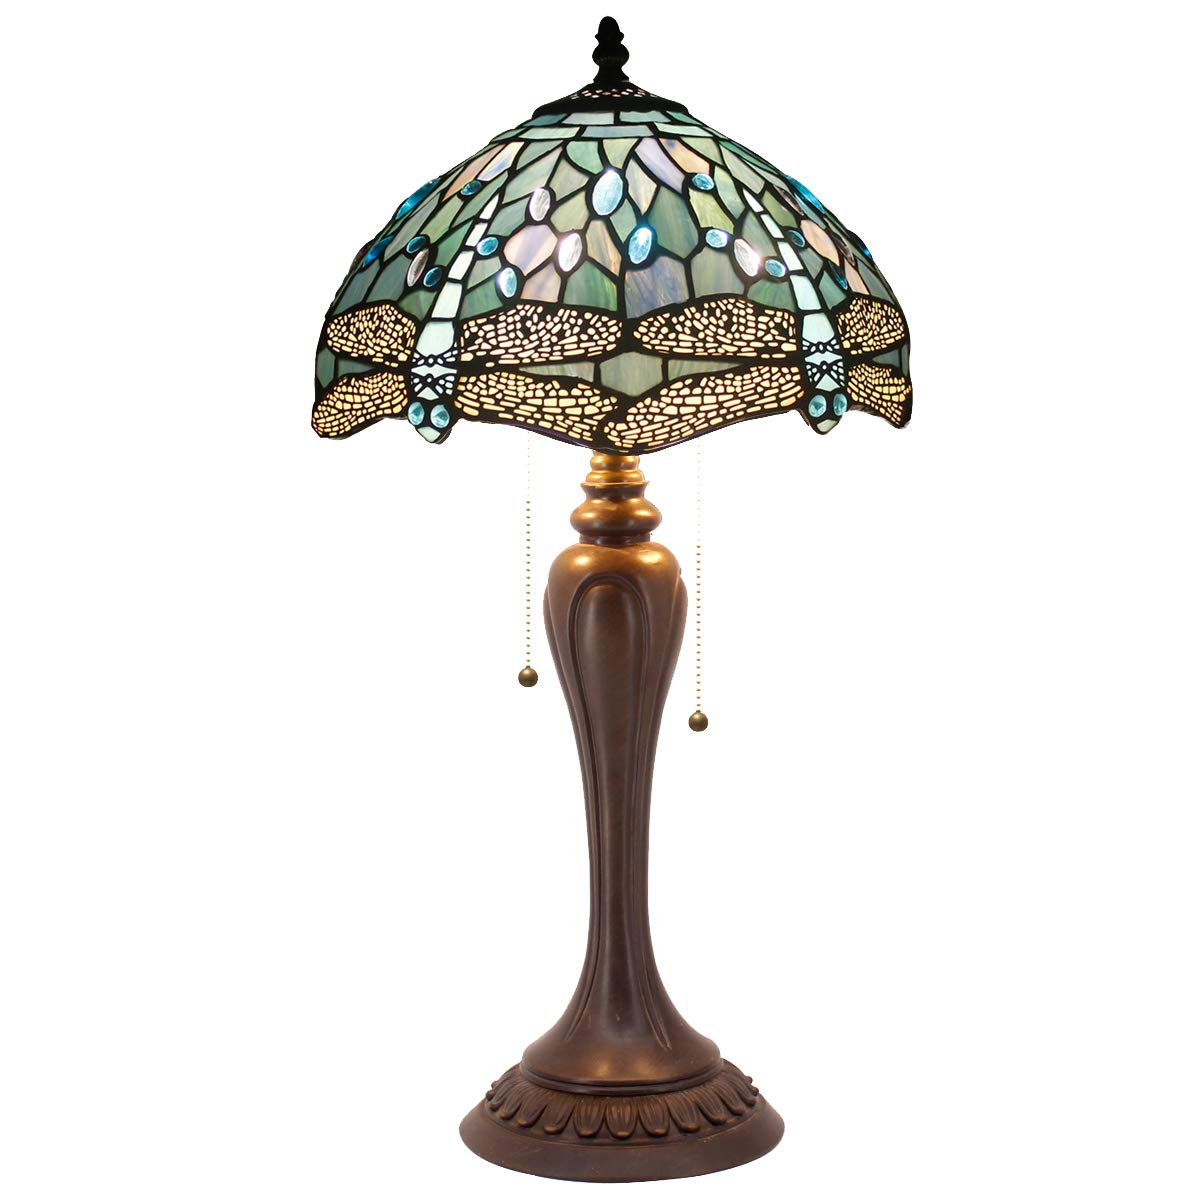 Tiffany Lamp Sea Blue Stained Glass and Crystal Bead Dragonfly Style Table Lamps W12 H22 Inch for Coffee Table Living Room Antique Desk Beside Bedroom S147 WERFACTORY